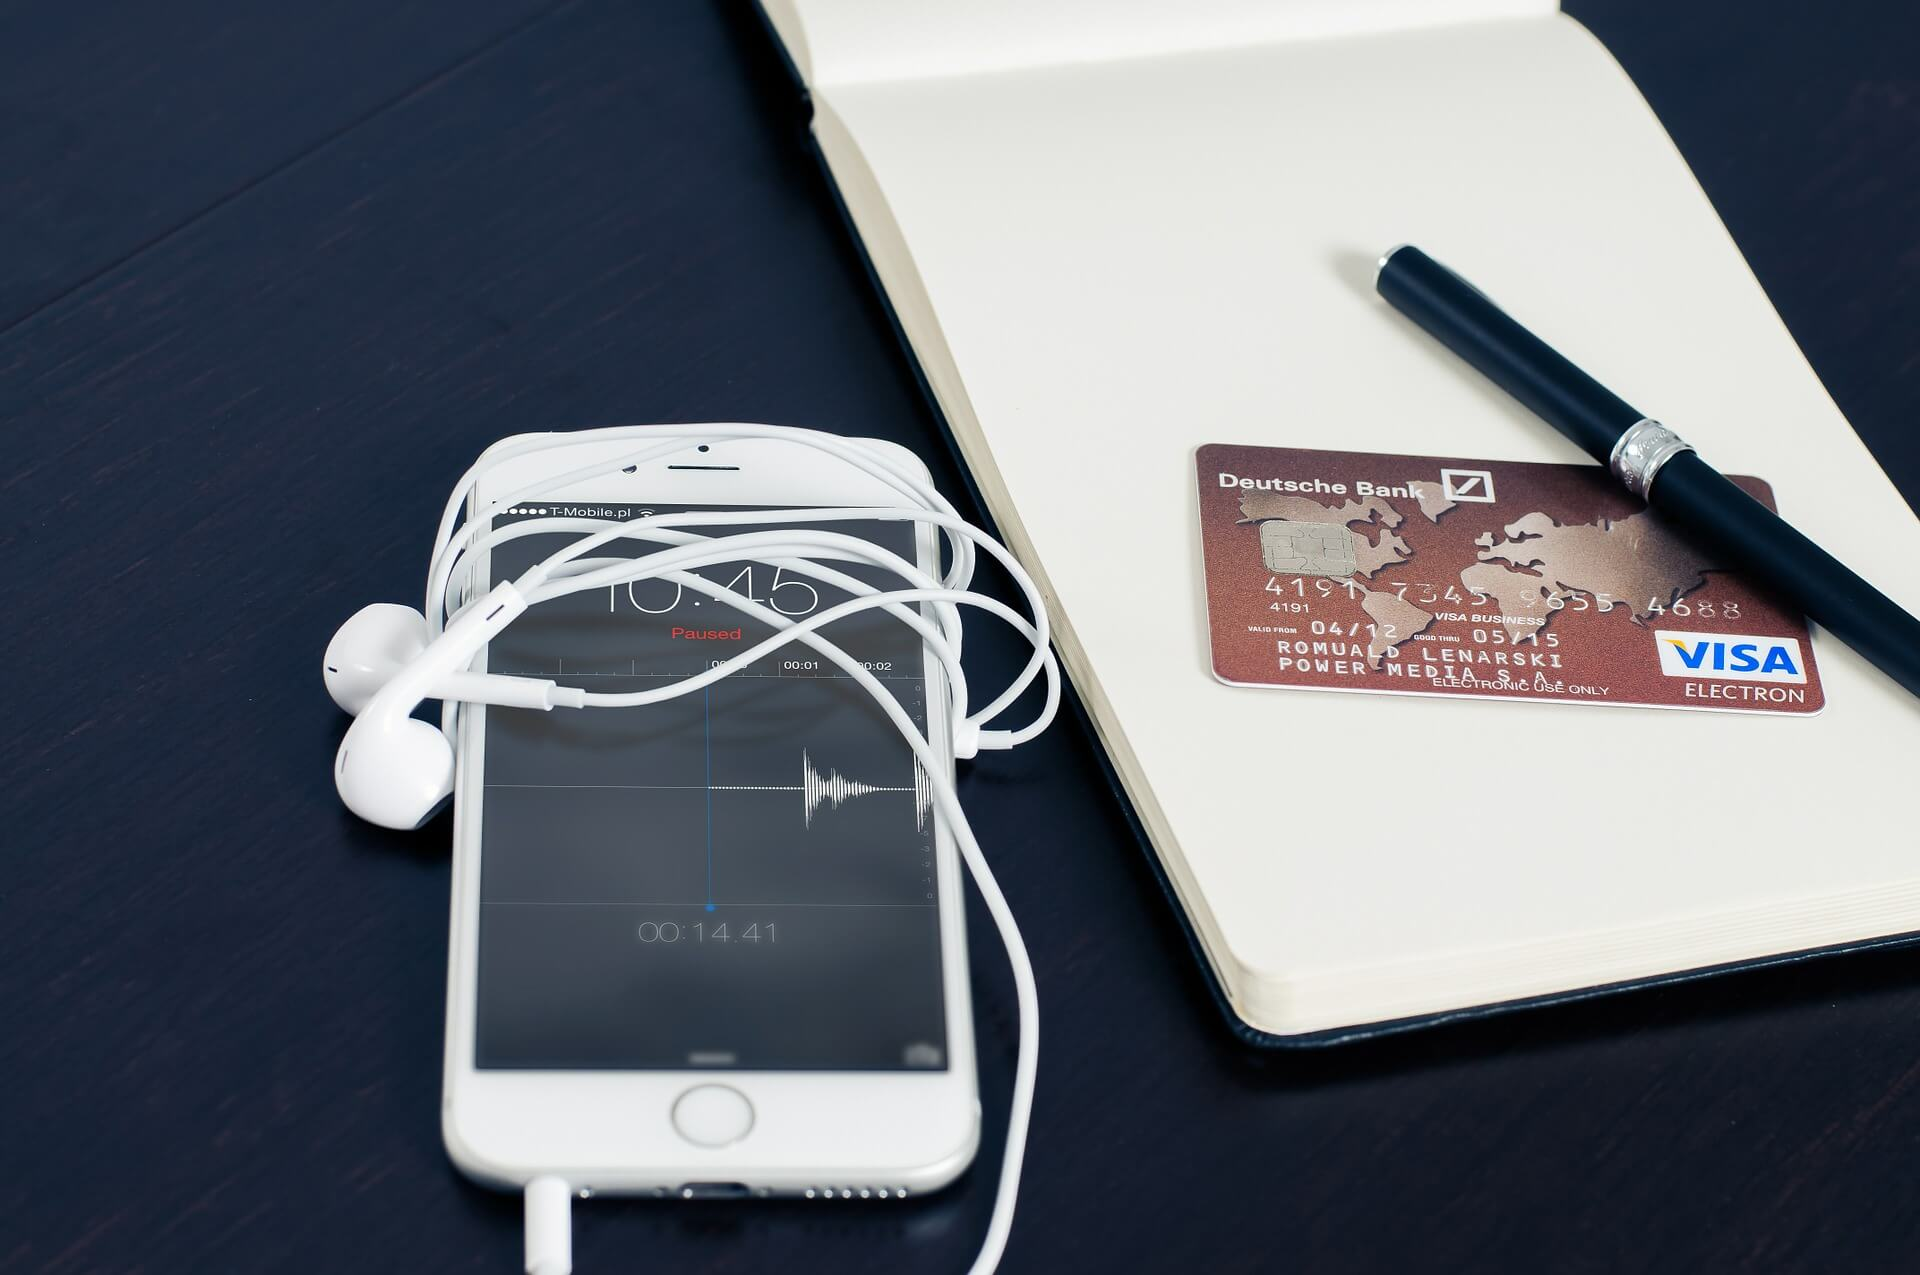 An iPhone sits on a table next to a credit card and a notepad.